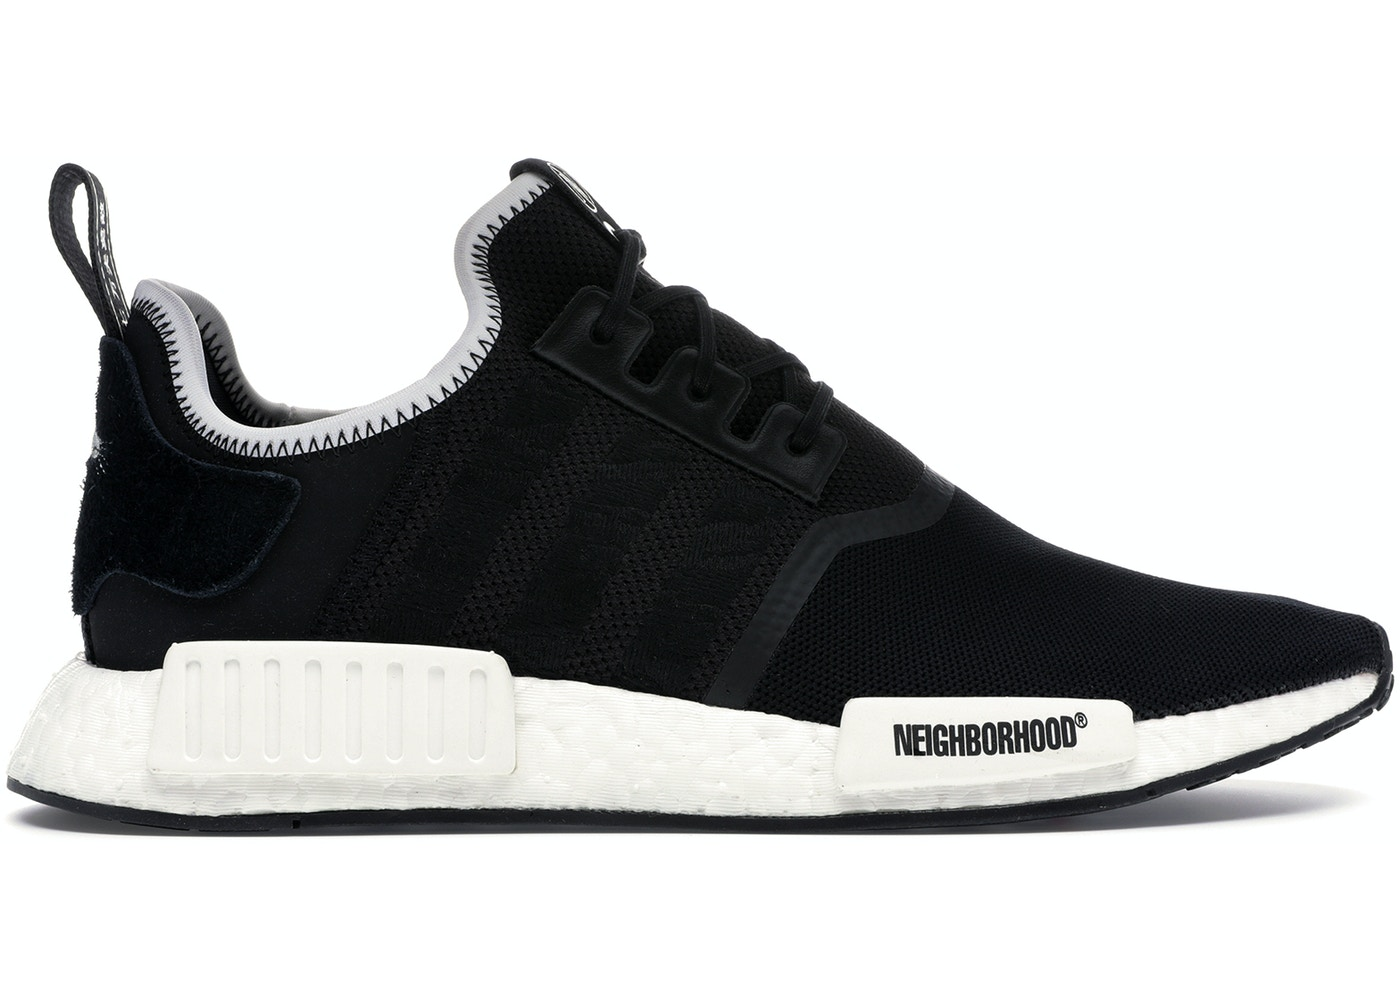 meet cd551 77bc7 adidas NMD R1 Neighborhood x Invincible - CQ1775